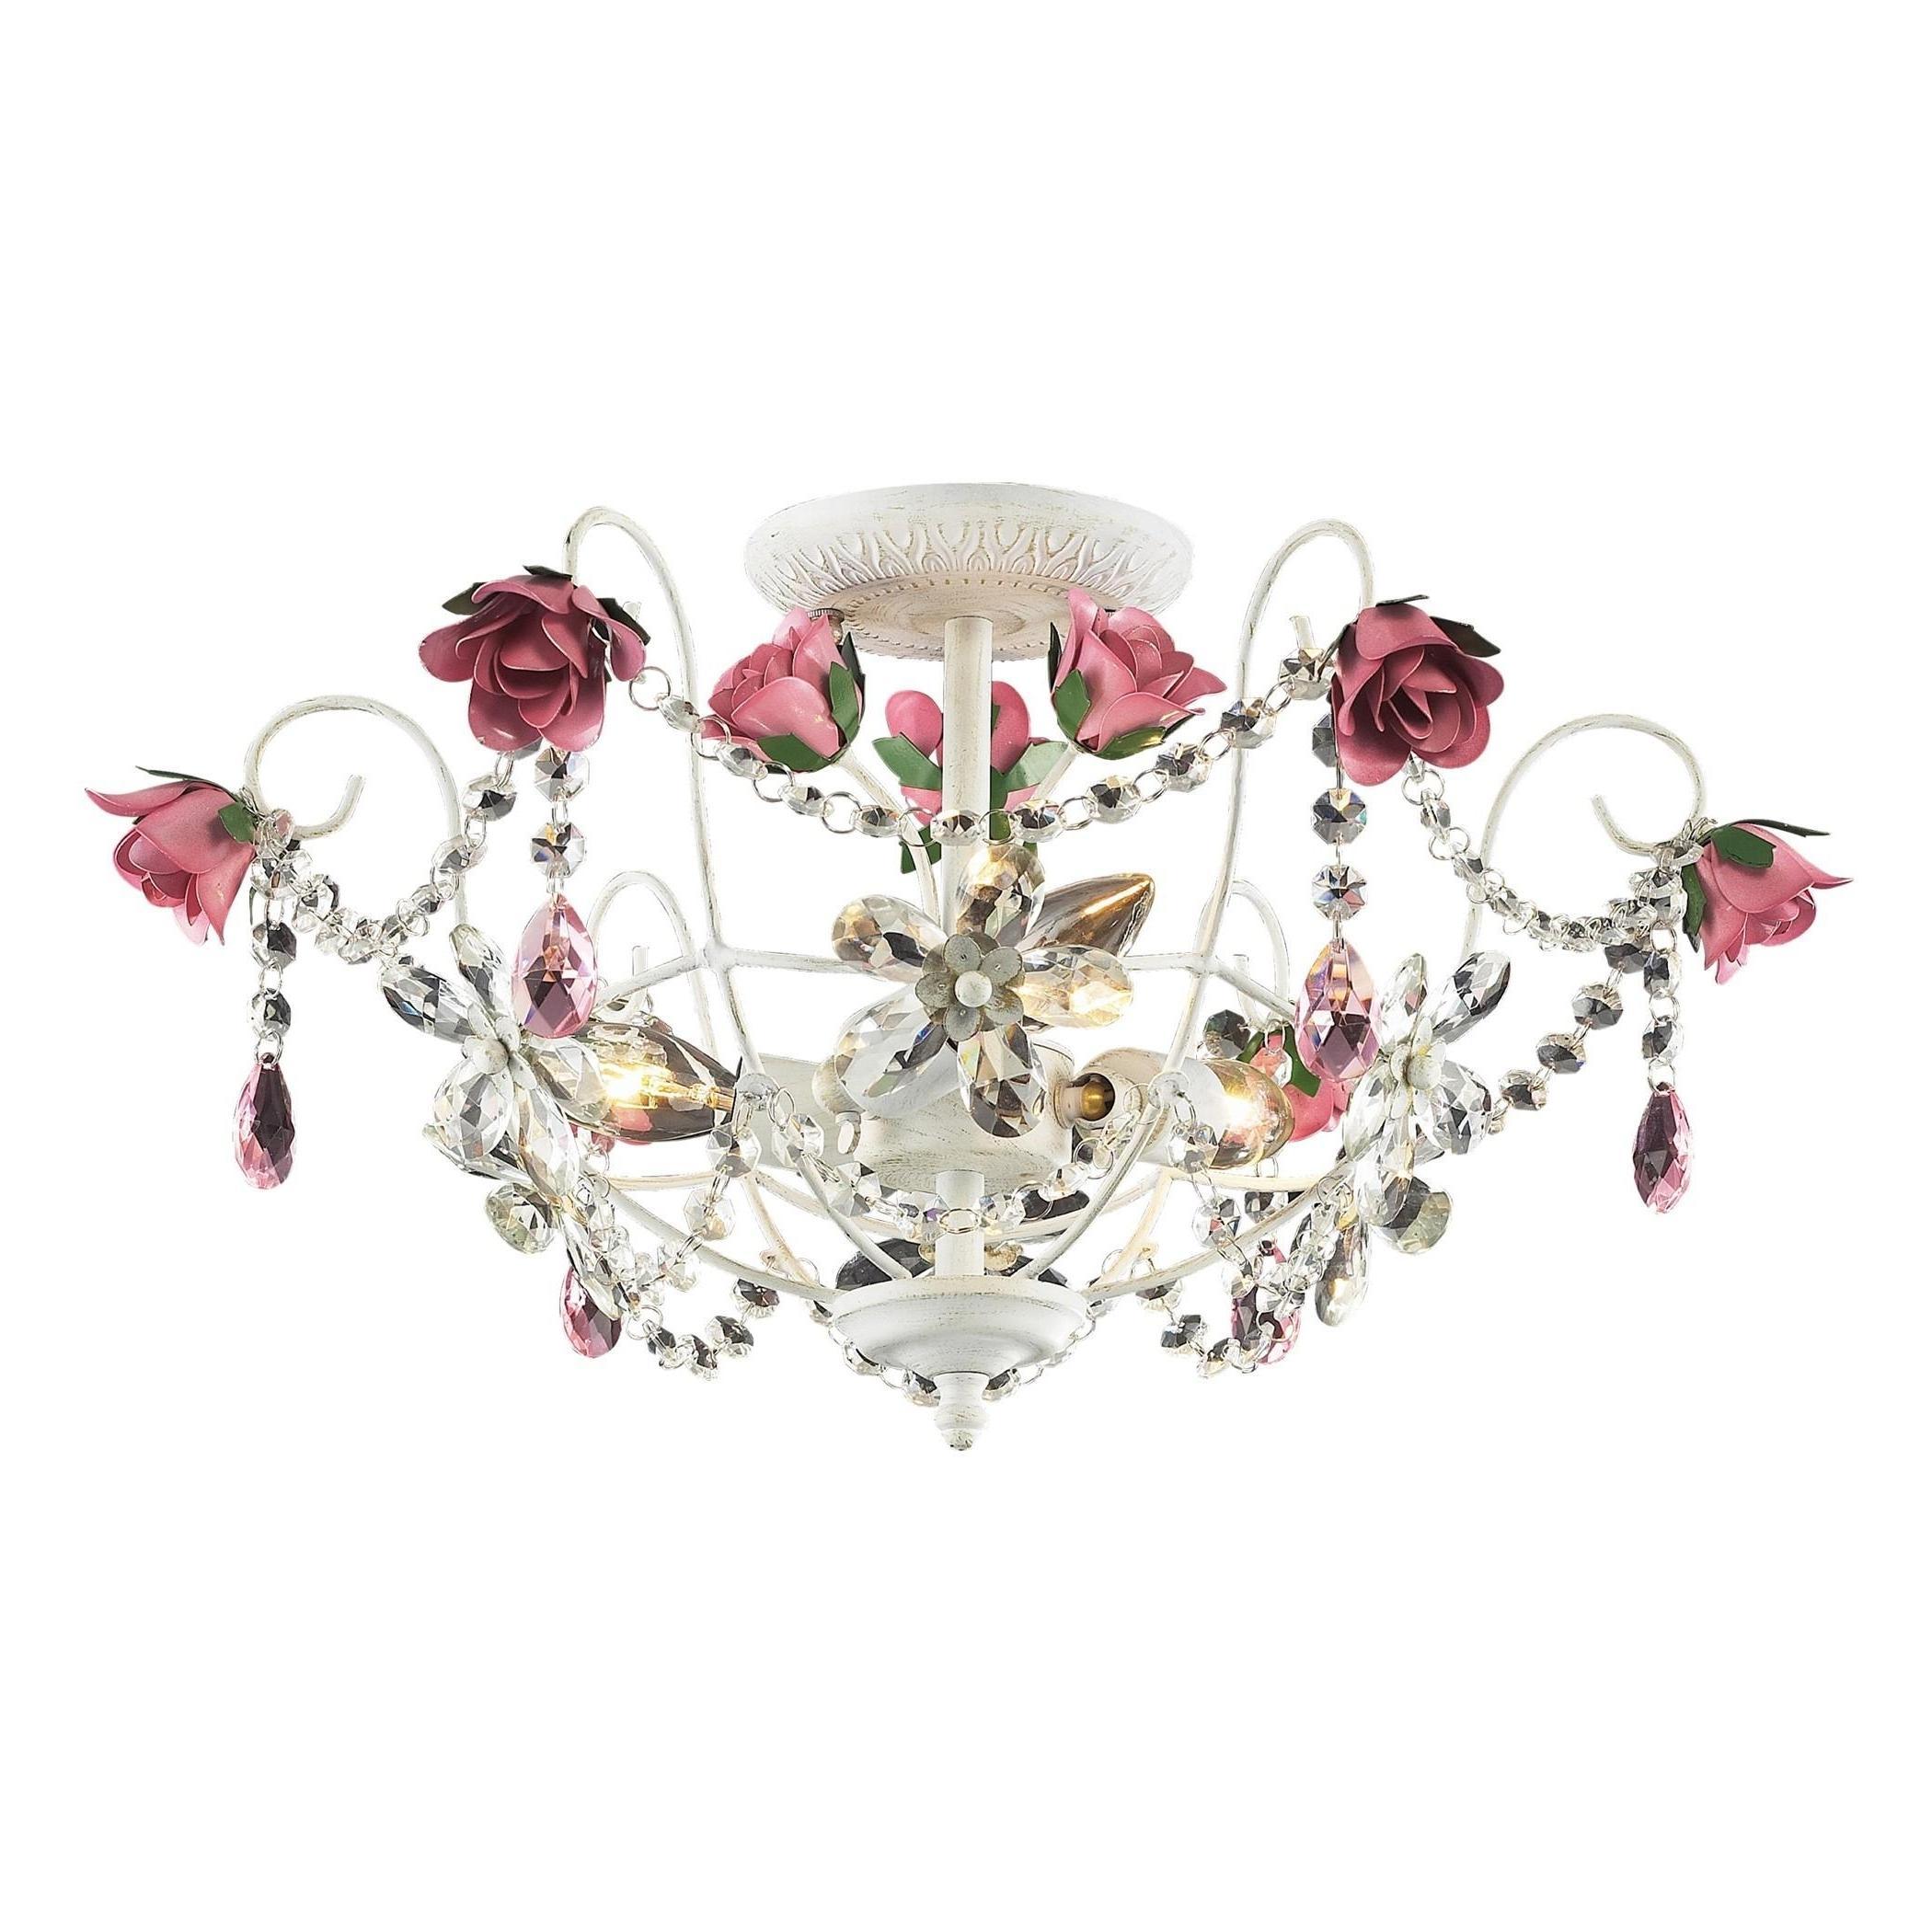 Most Popular Chandeliers : Shabby Chic Chandeliers Inspirational Chandeliers In Small Shabby Chic Chandelier (View 14 of 20)